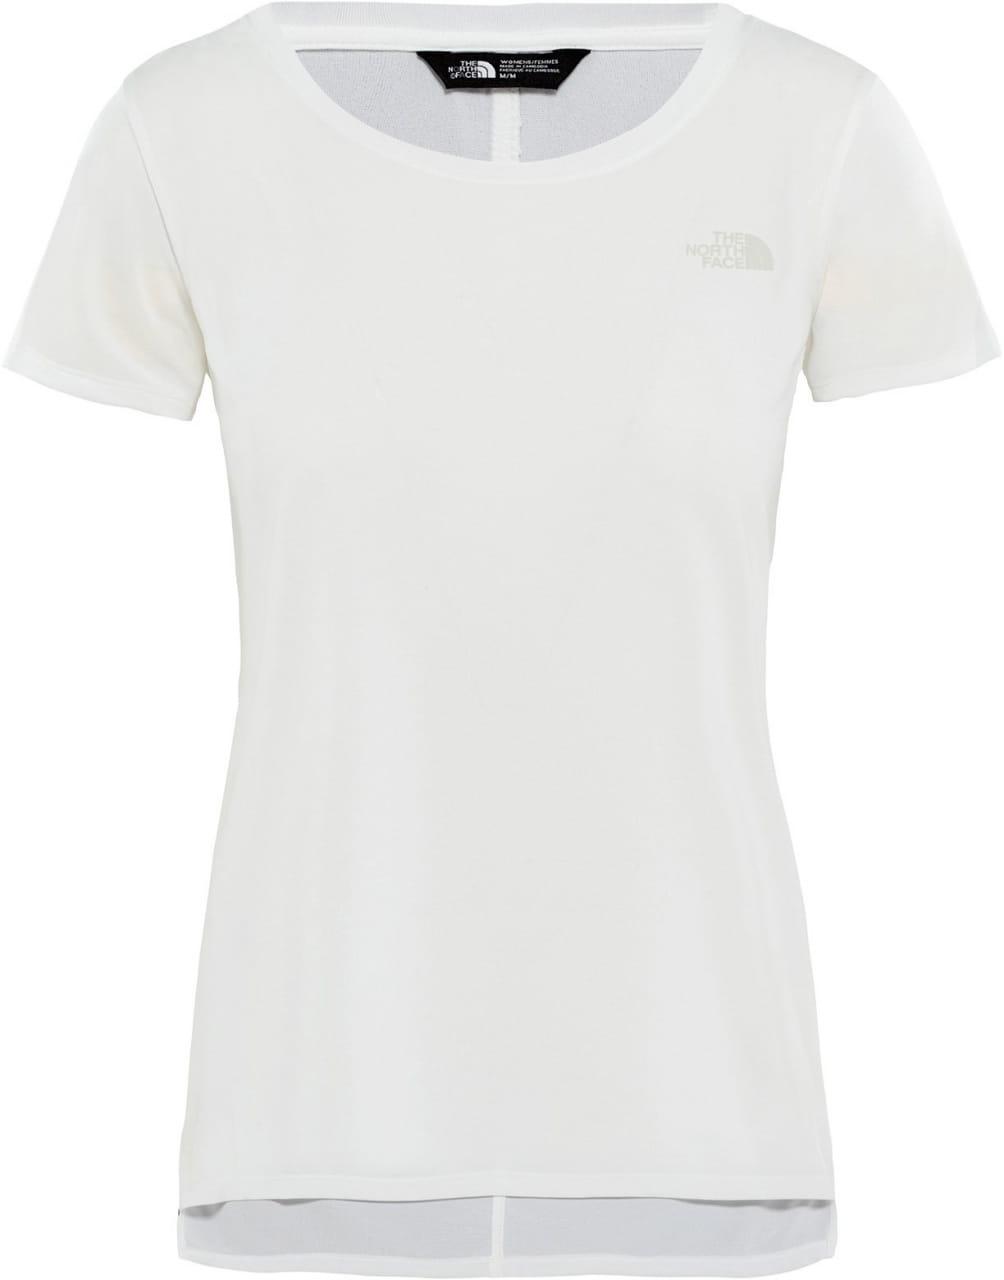 T-Shirts The North Face Women's Quest T-Shirt